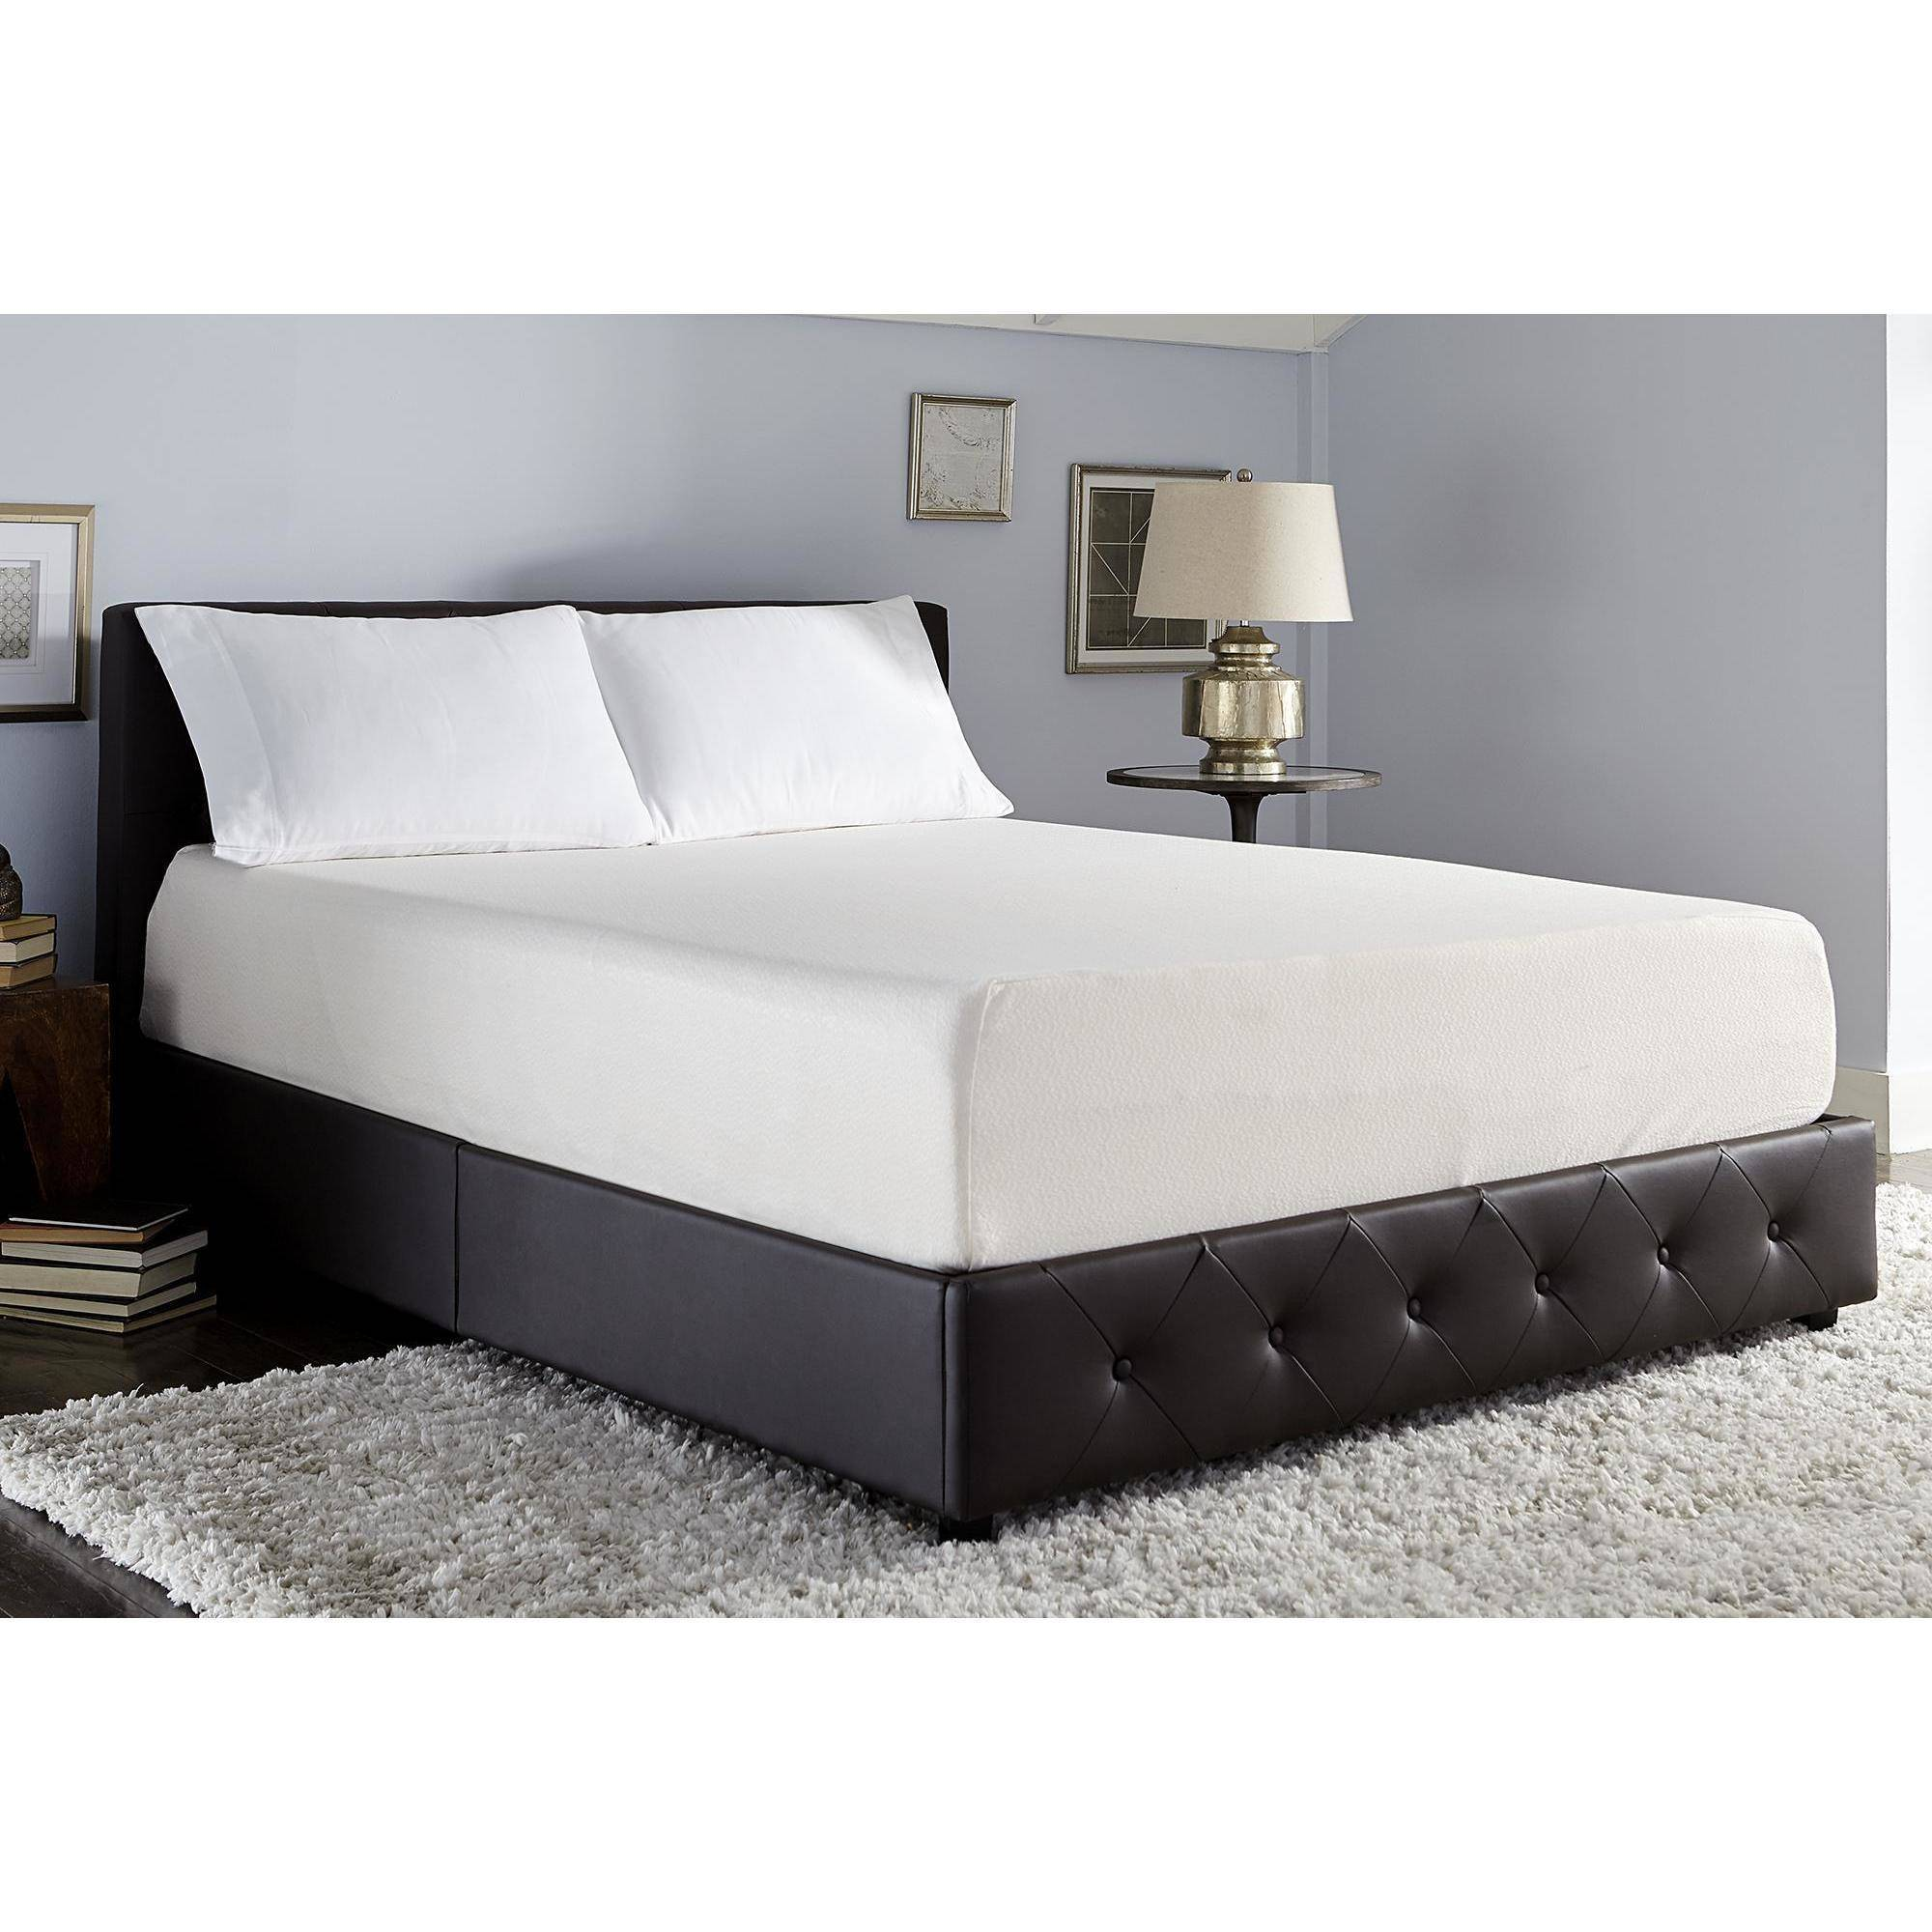 beds com sensations walmart memory ip mattress sizes foam bed multiple spa